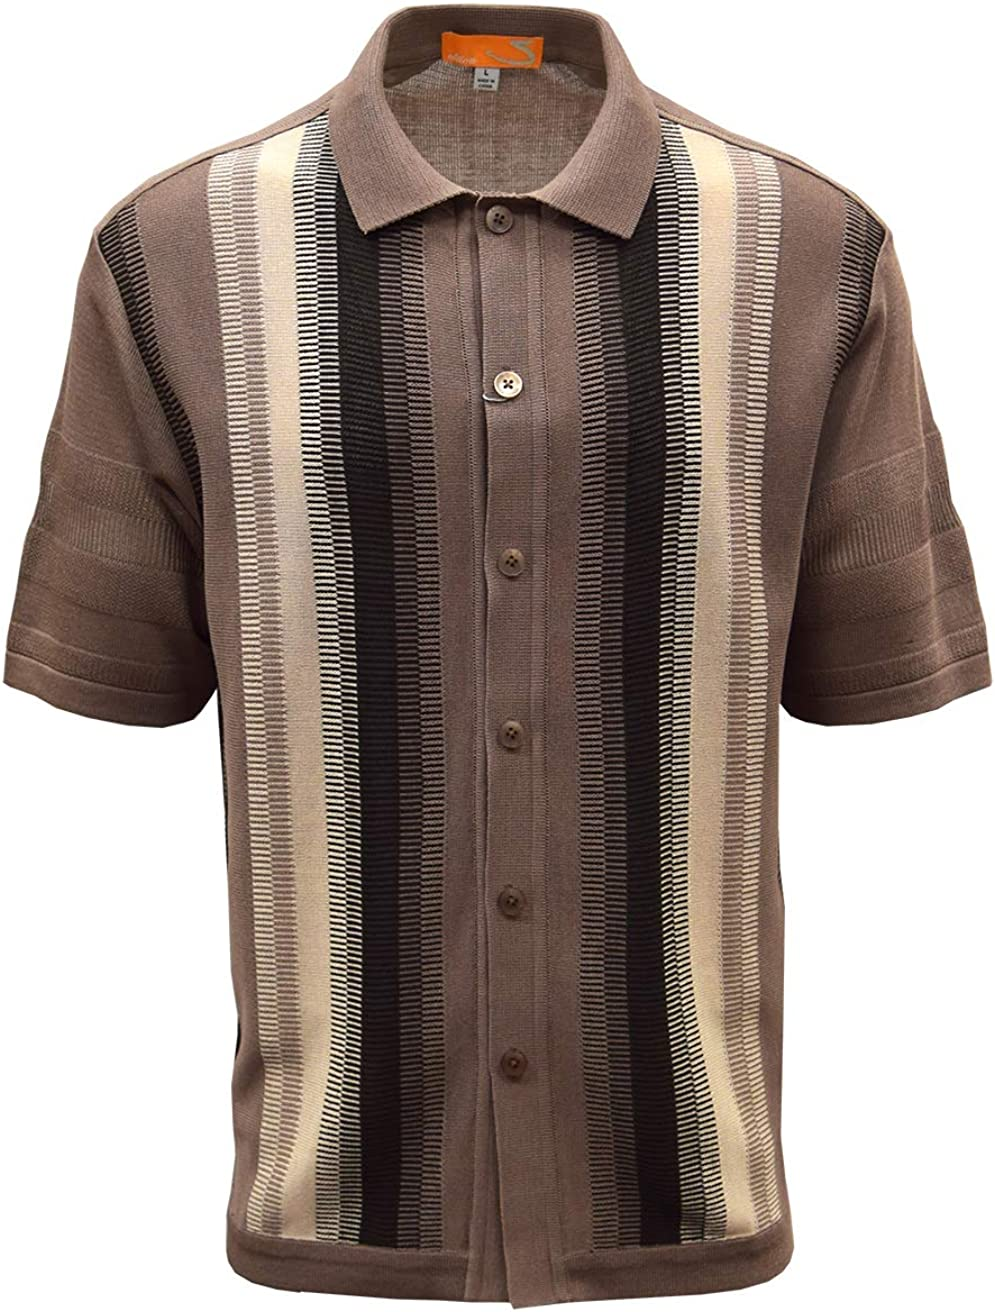 Mens Vintage Shirts – Casual, Dress, T-shirts, Polos SAFIRE SILK INC. Edition-S Men's Short Sleeve Knit Shirt- California Rockabilly Style: Vertical Geometric Comb Panel $49.00 AT vintagedancer.com